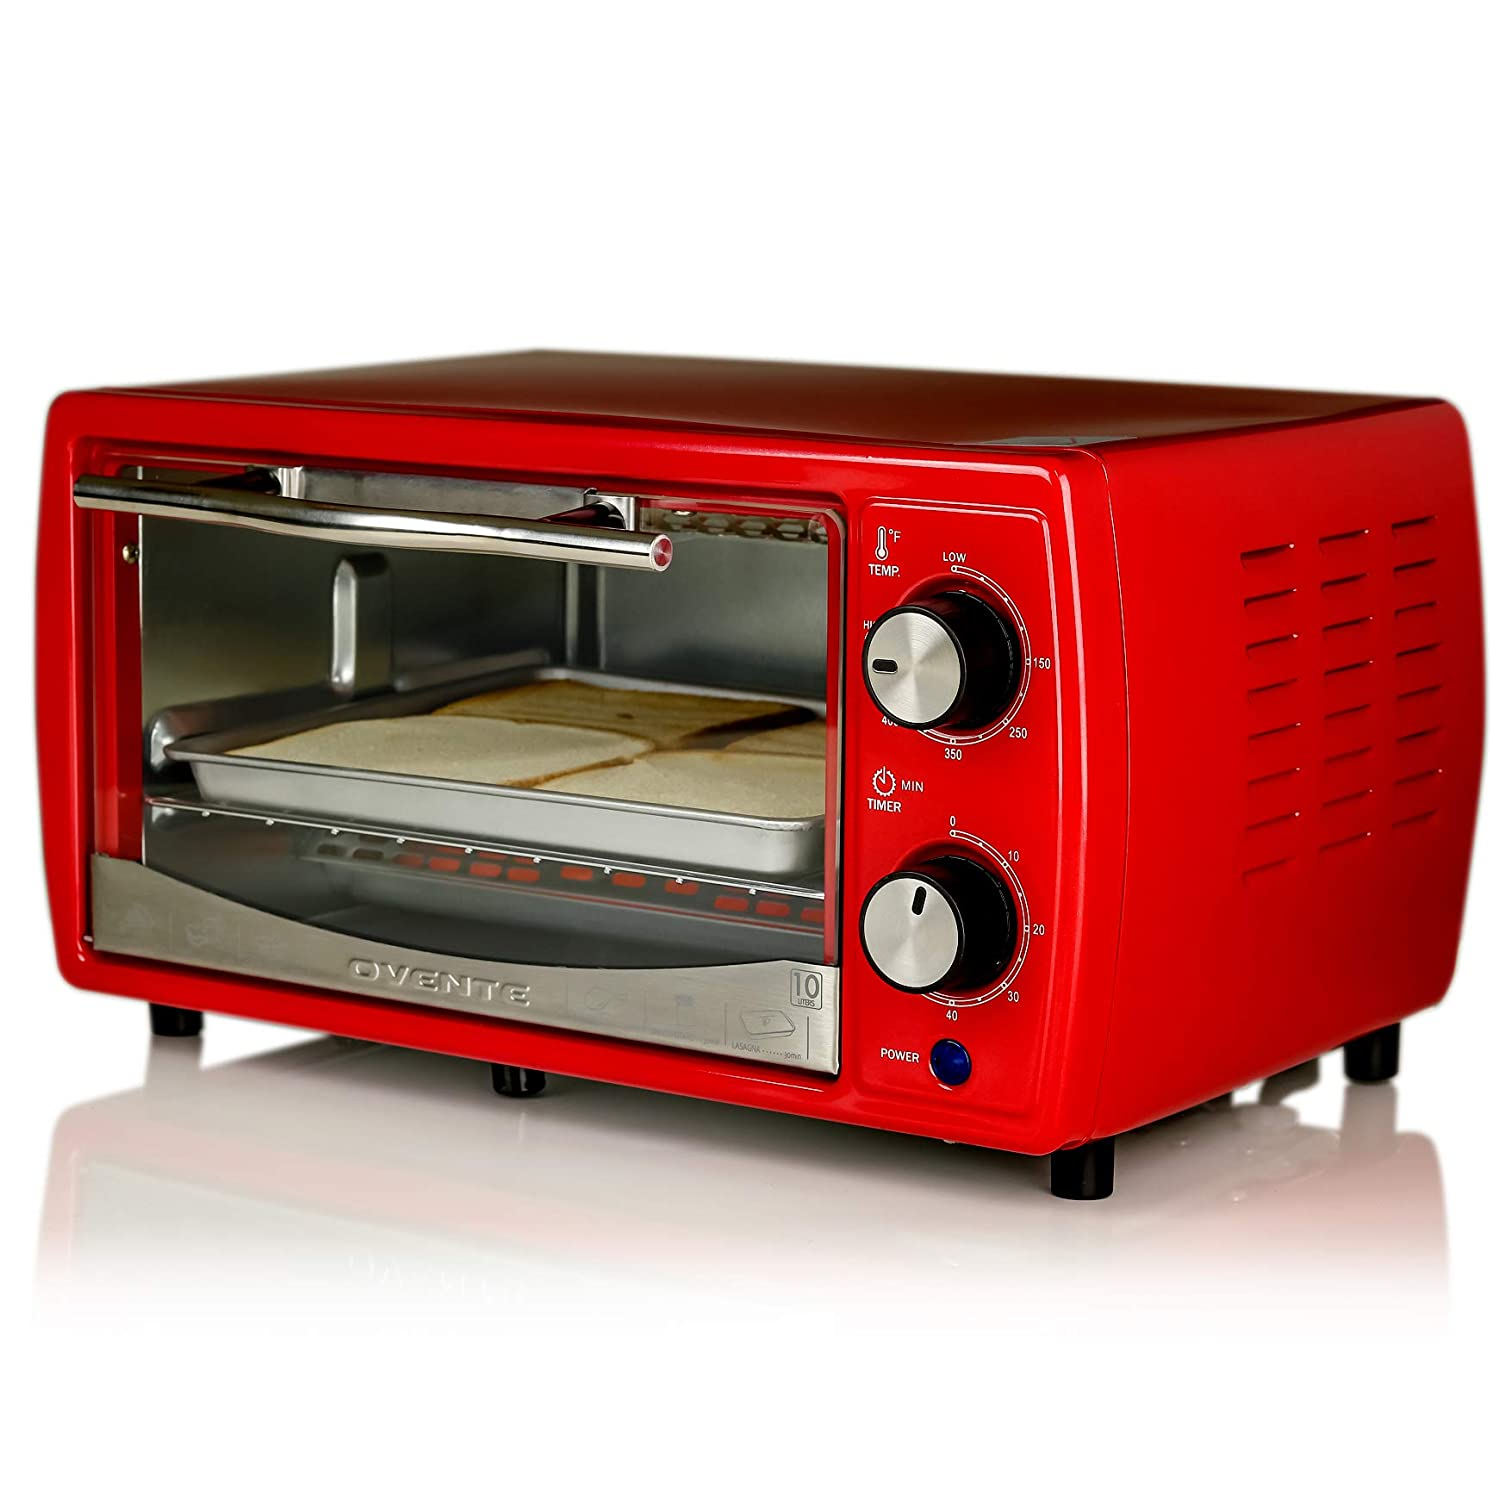 Ovente Electric Toaster Oven with Timer Knob and Tempered Glass Door, 700-Watts, 9.5 Liter, Cool-Touch Handle, Includes LED Light, Food Tray, and Grill Rack, Red (TO6895R)